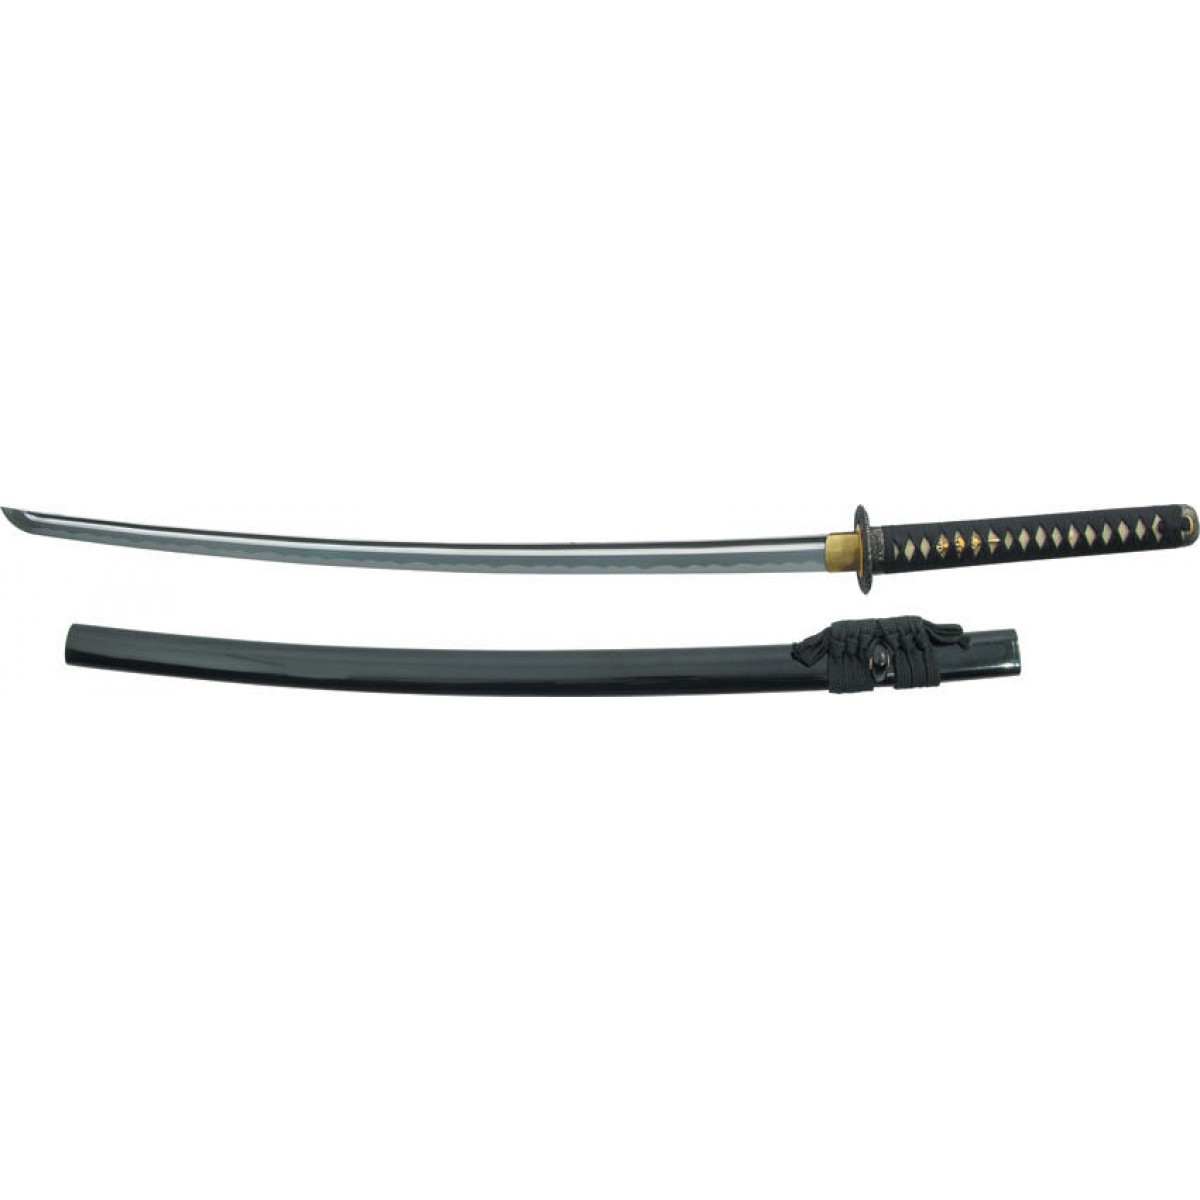 High Resolution Wallpaper | Shinto Katana 1200x1200 px